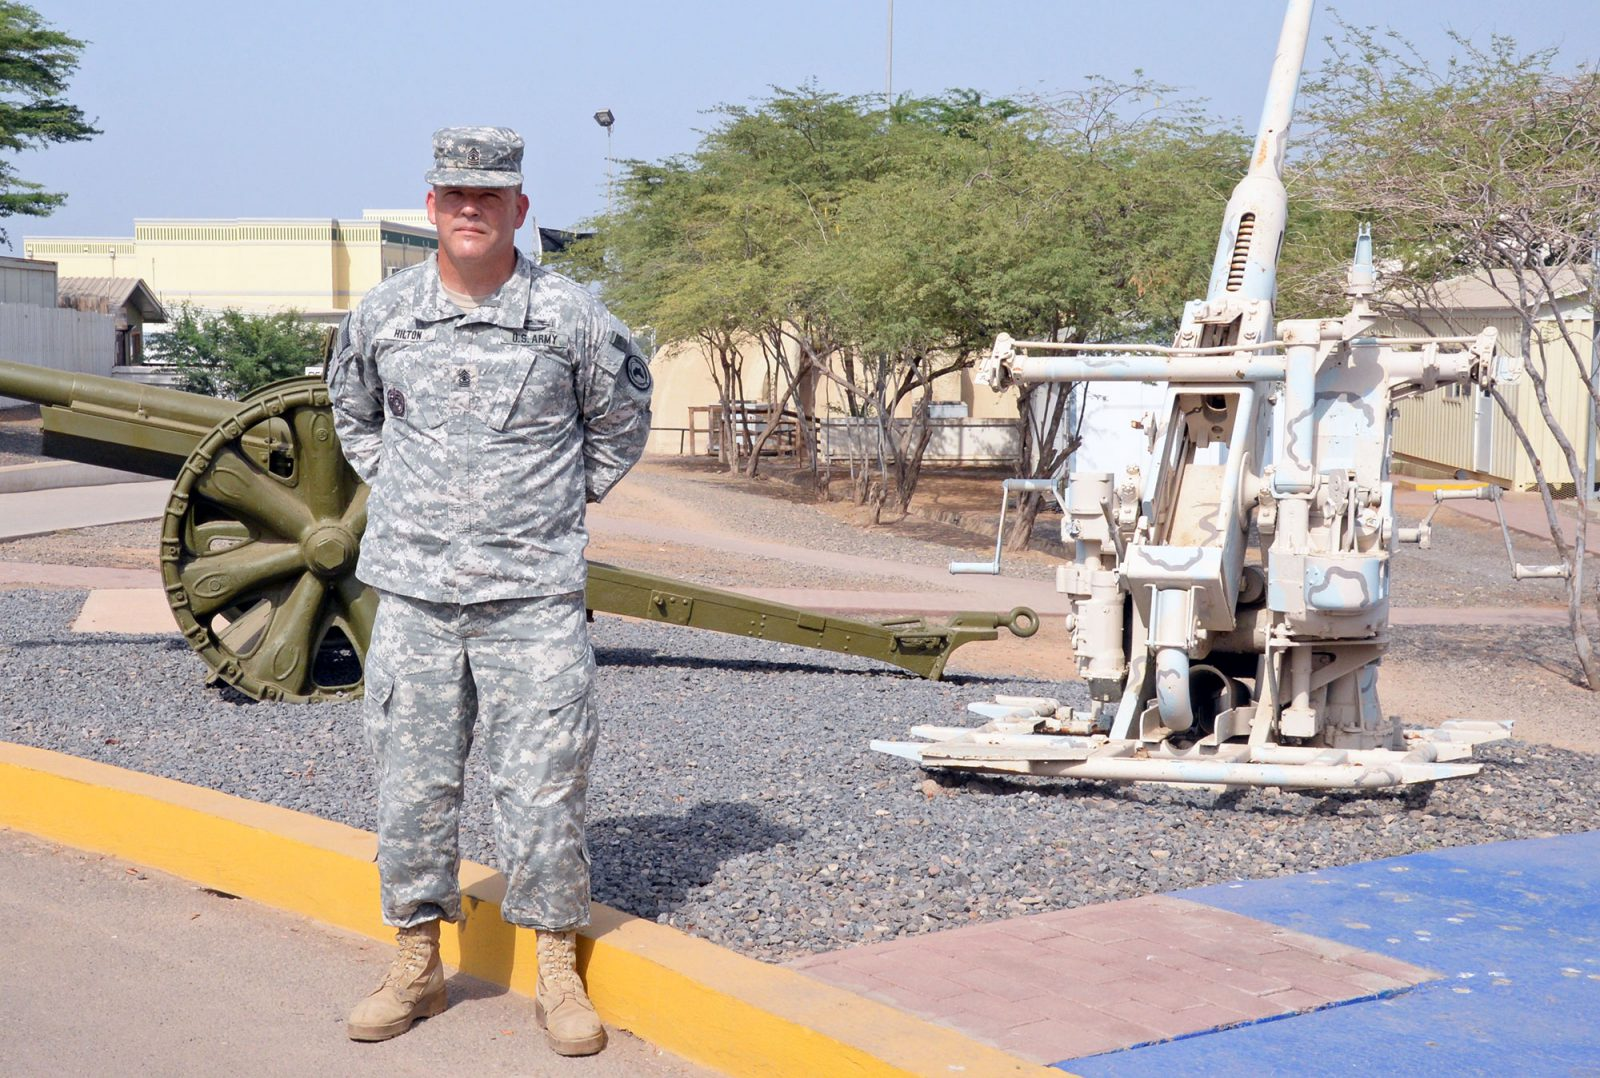 Sgt. Maj. John Hilton is serving in Djibouti as an embedded liaison officer for the Center for Army Lessons Learned. (Photo by Jonathan (Jay) Koester / NCO Journal)